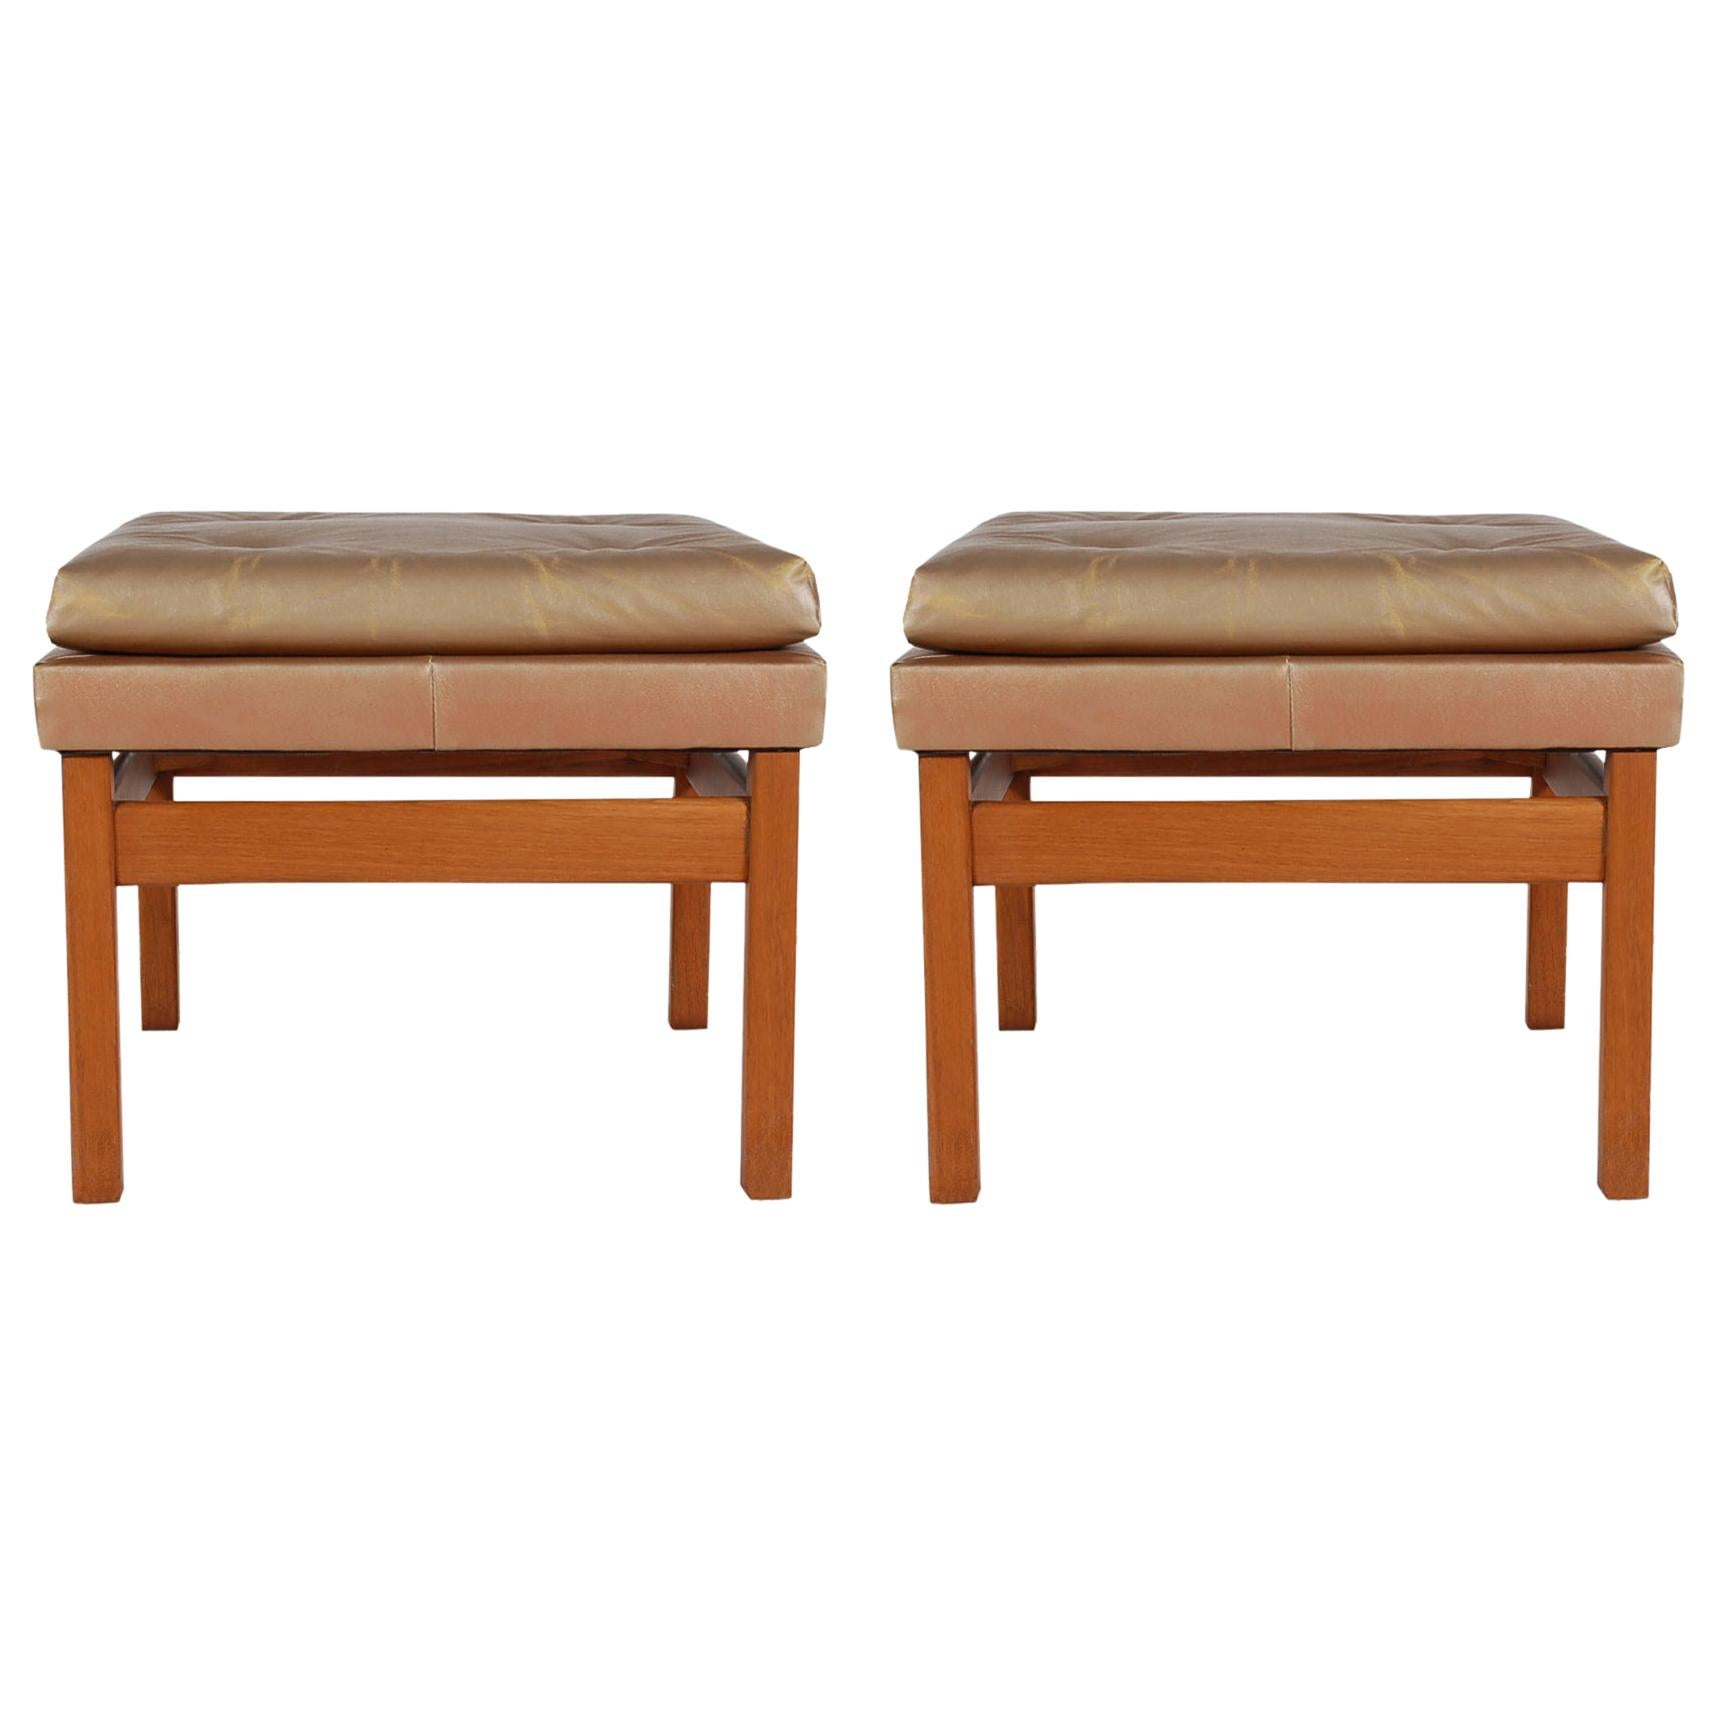 Mid-Century Modern Upholstered and Wood Bench Set by Milo Baughman Thayer Coggin